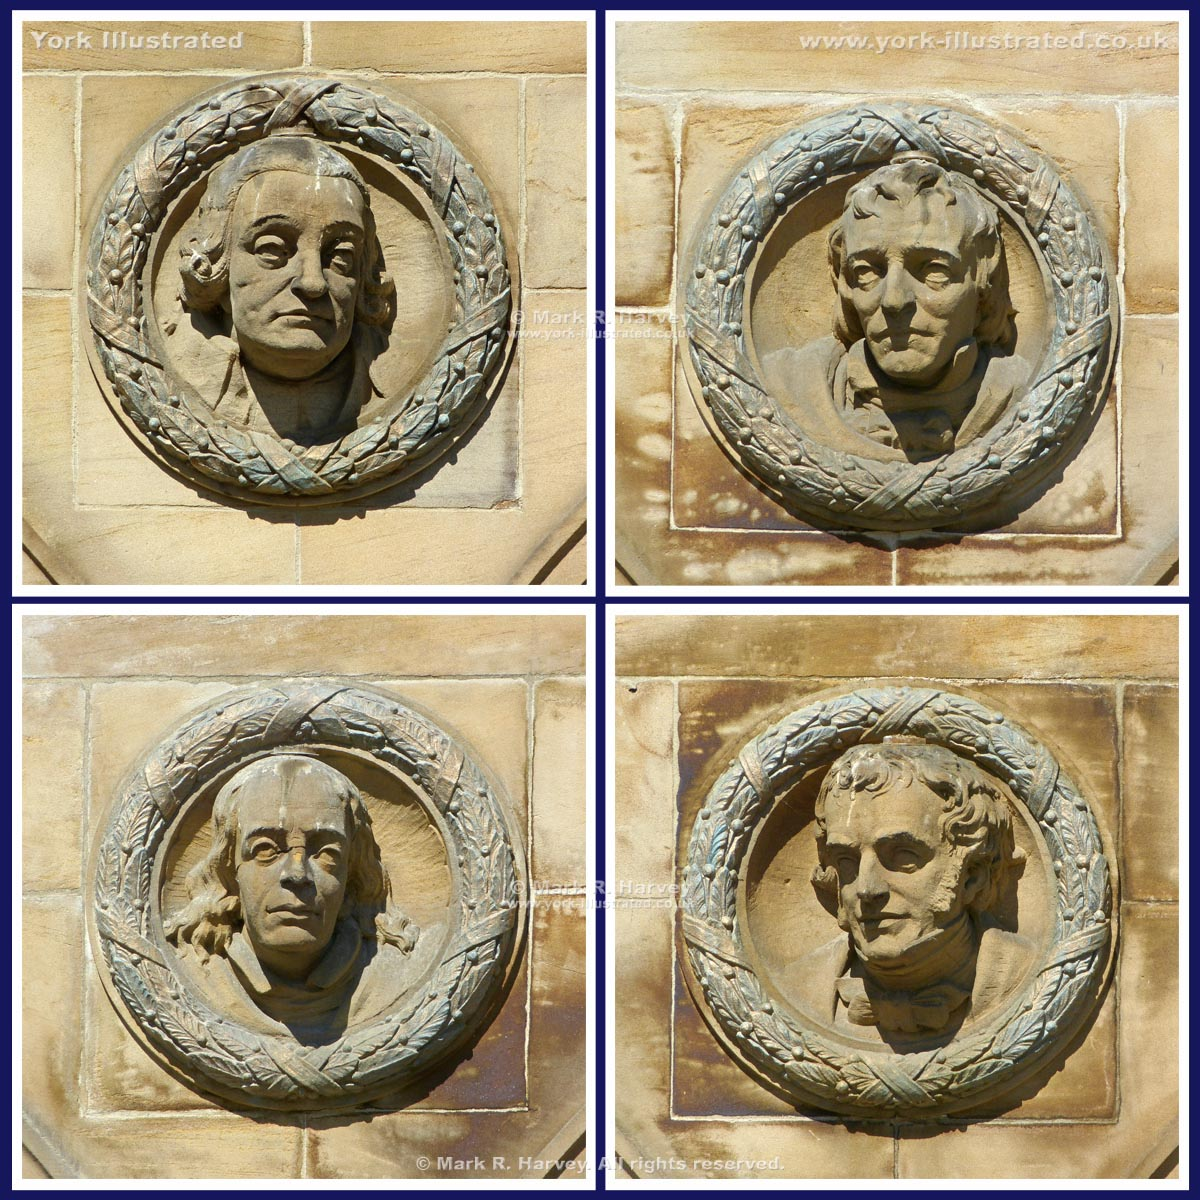 Photo-montage: The four portrait roundels on front facade of the York Art Gallery building.